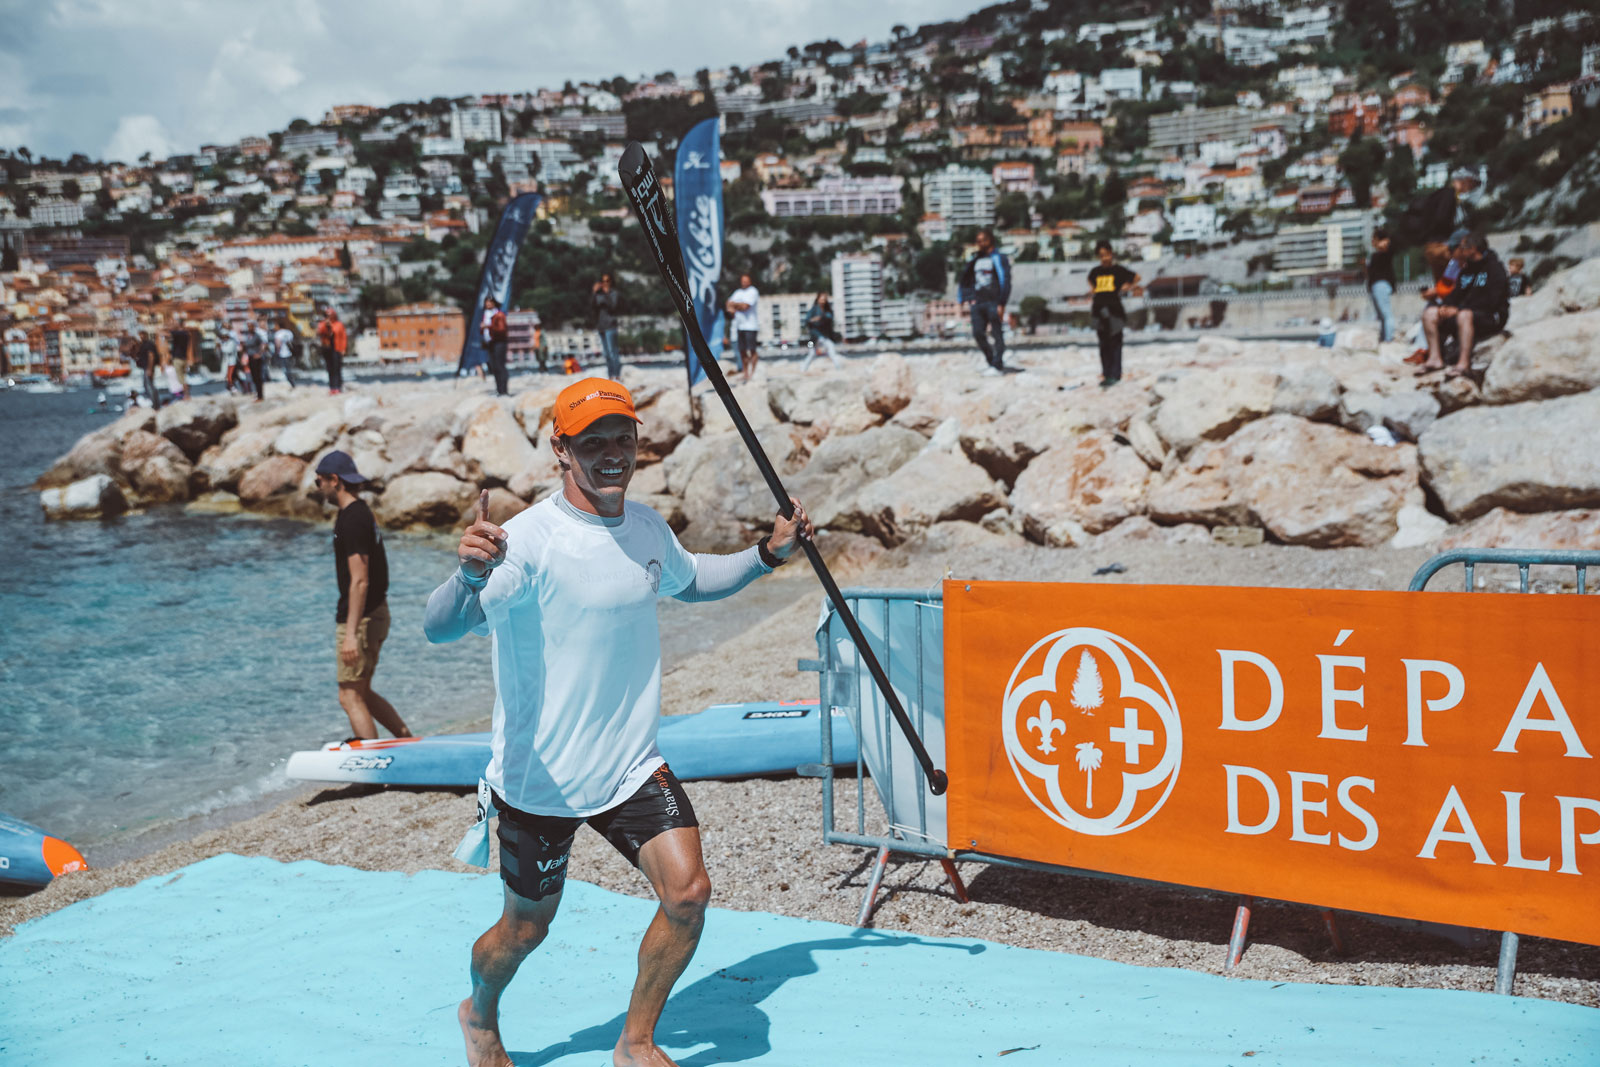 Starboard-SUP-Stand-Up-Paddleboarding-Michael-Booth-Fiona-Wylde-Win-2019-Azur-Paddle-Days-Race-Event-France-Boohy-croses-finish-line